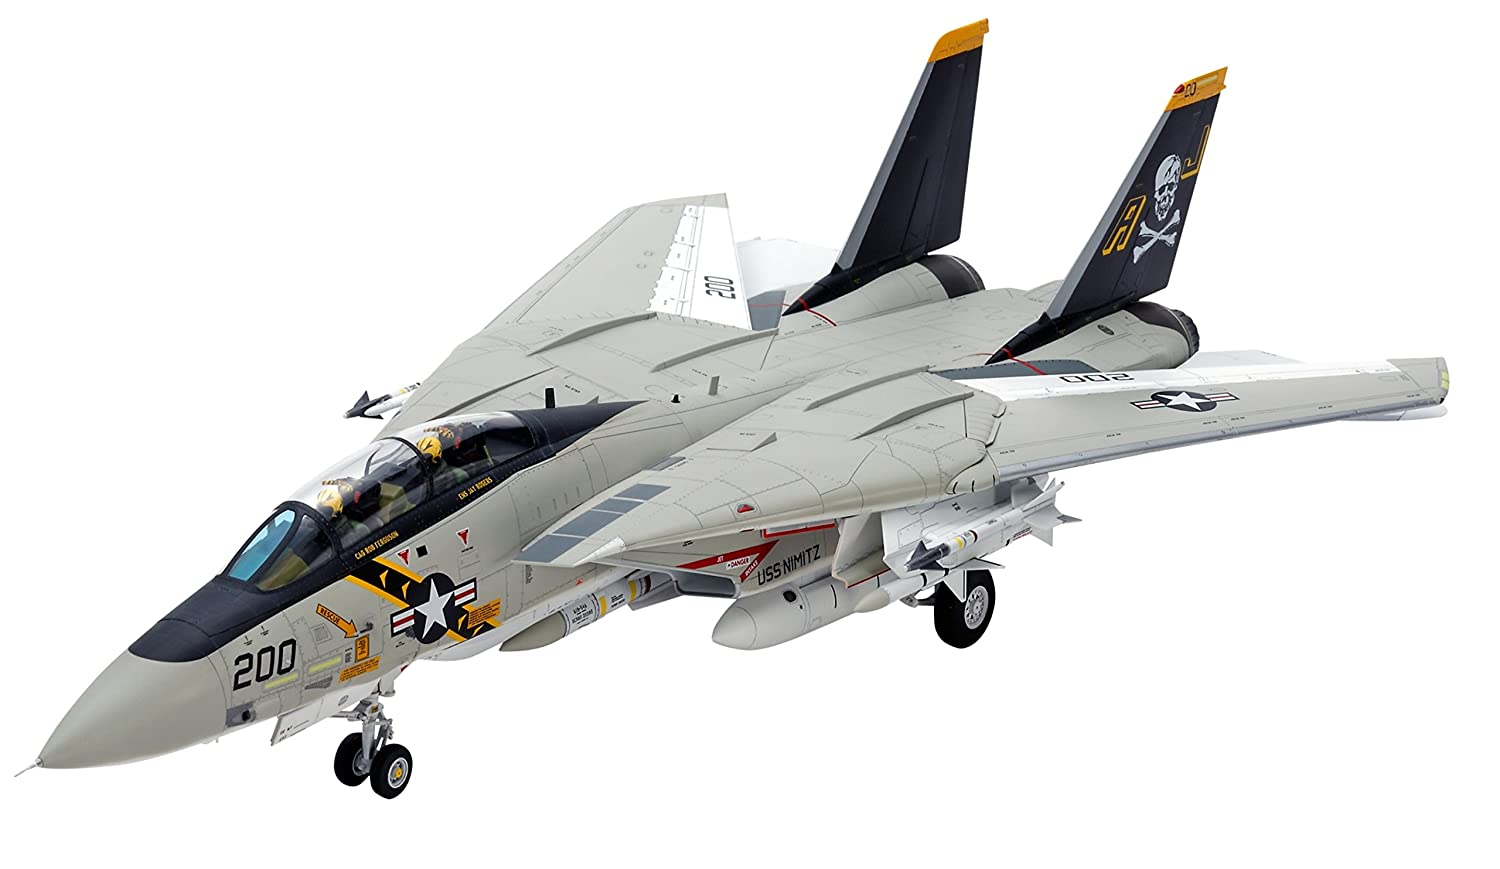 1:48 Tamiya Grumman F-14A Tomcat Model Kit